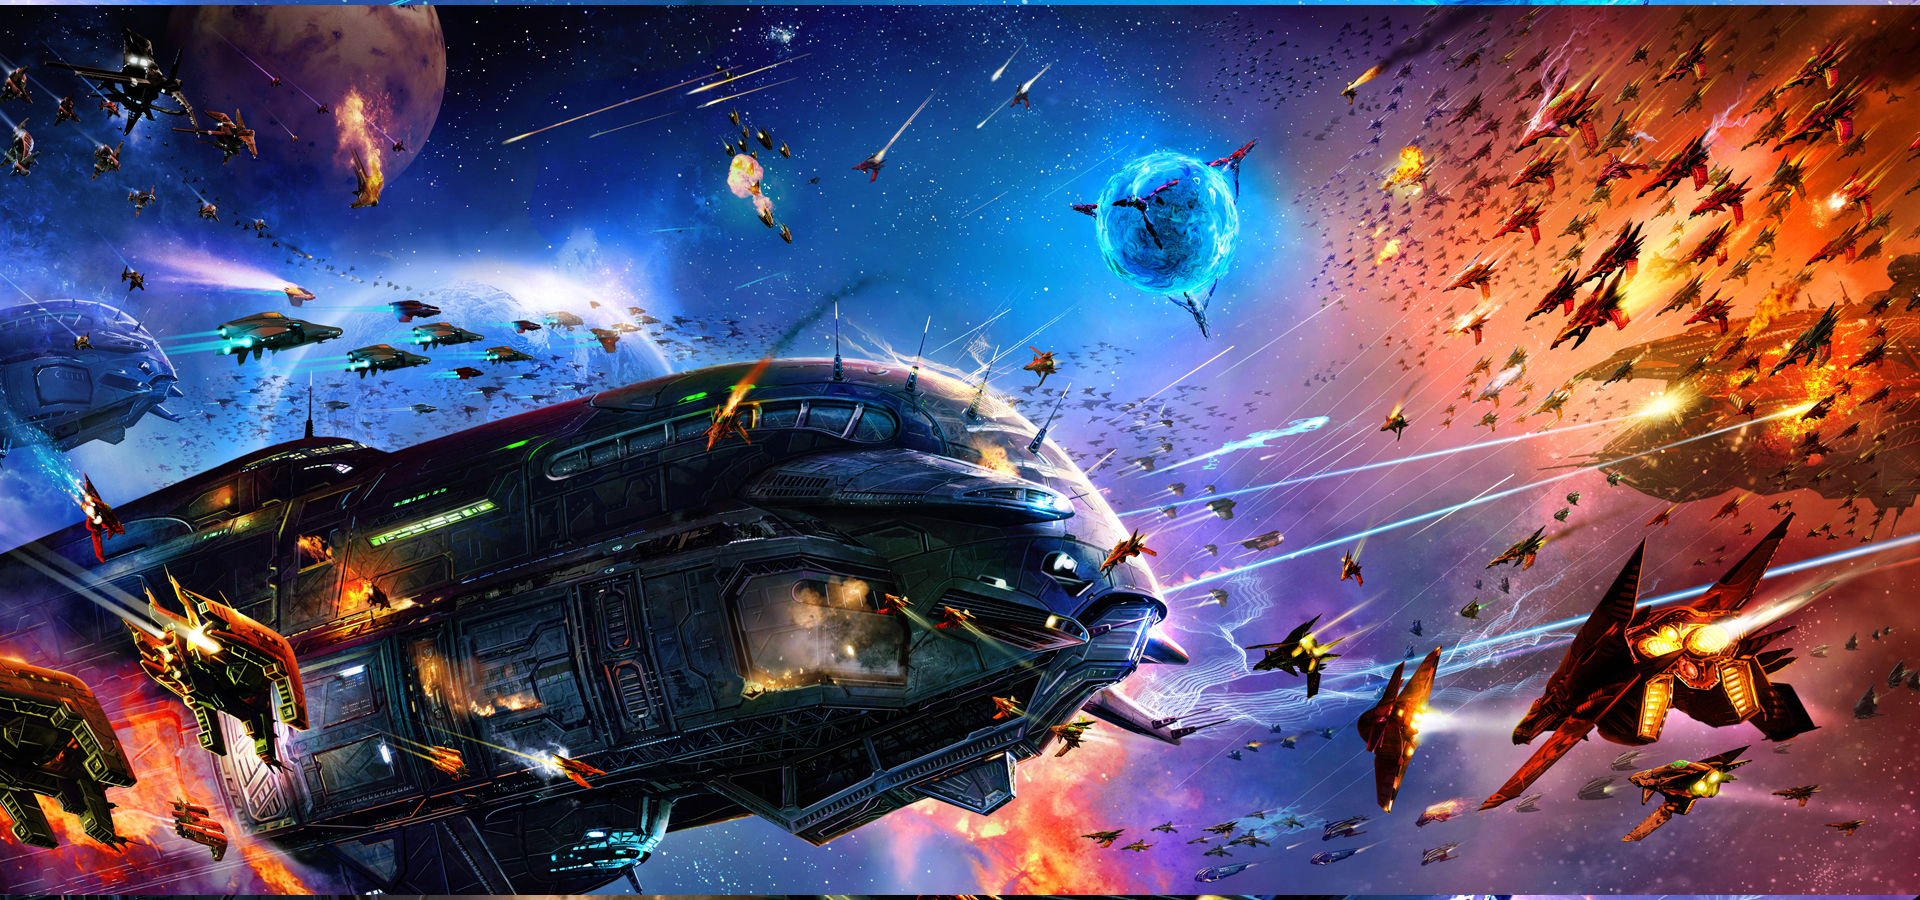 Star Wars Battle Backgrounds: Future Of The Universe Battle Scenes, Spacecraft, Star